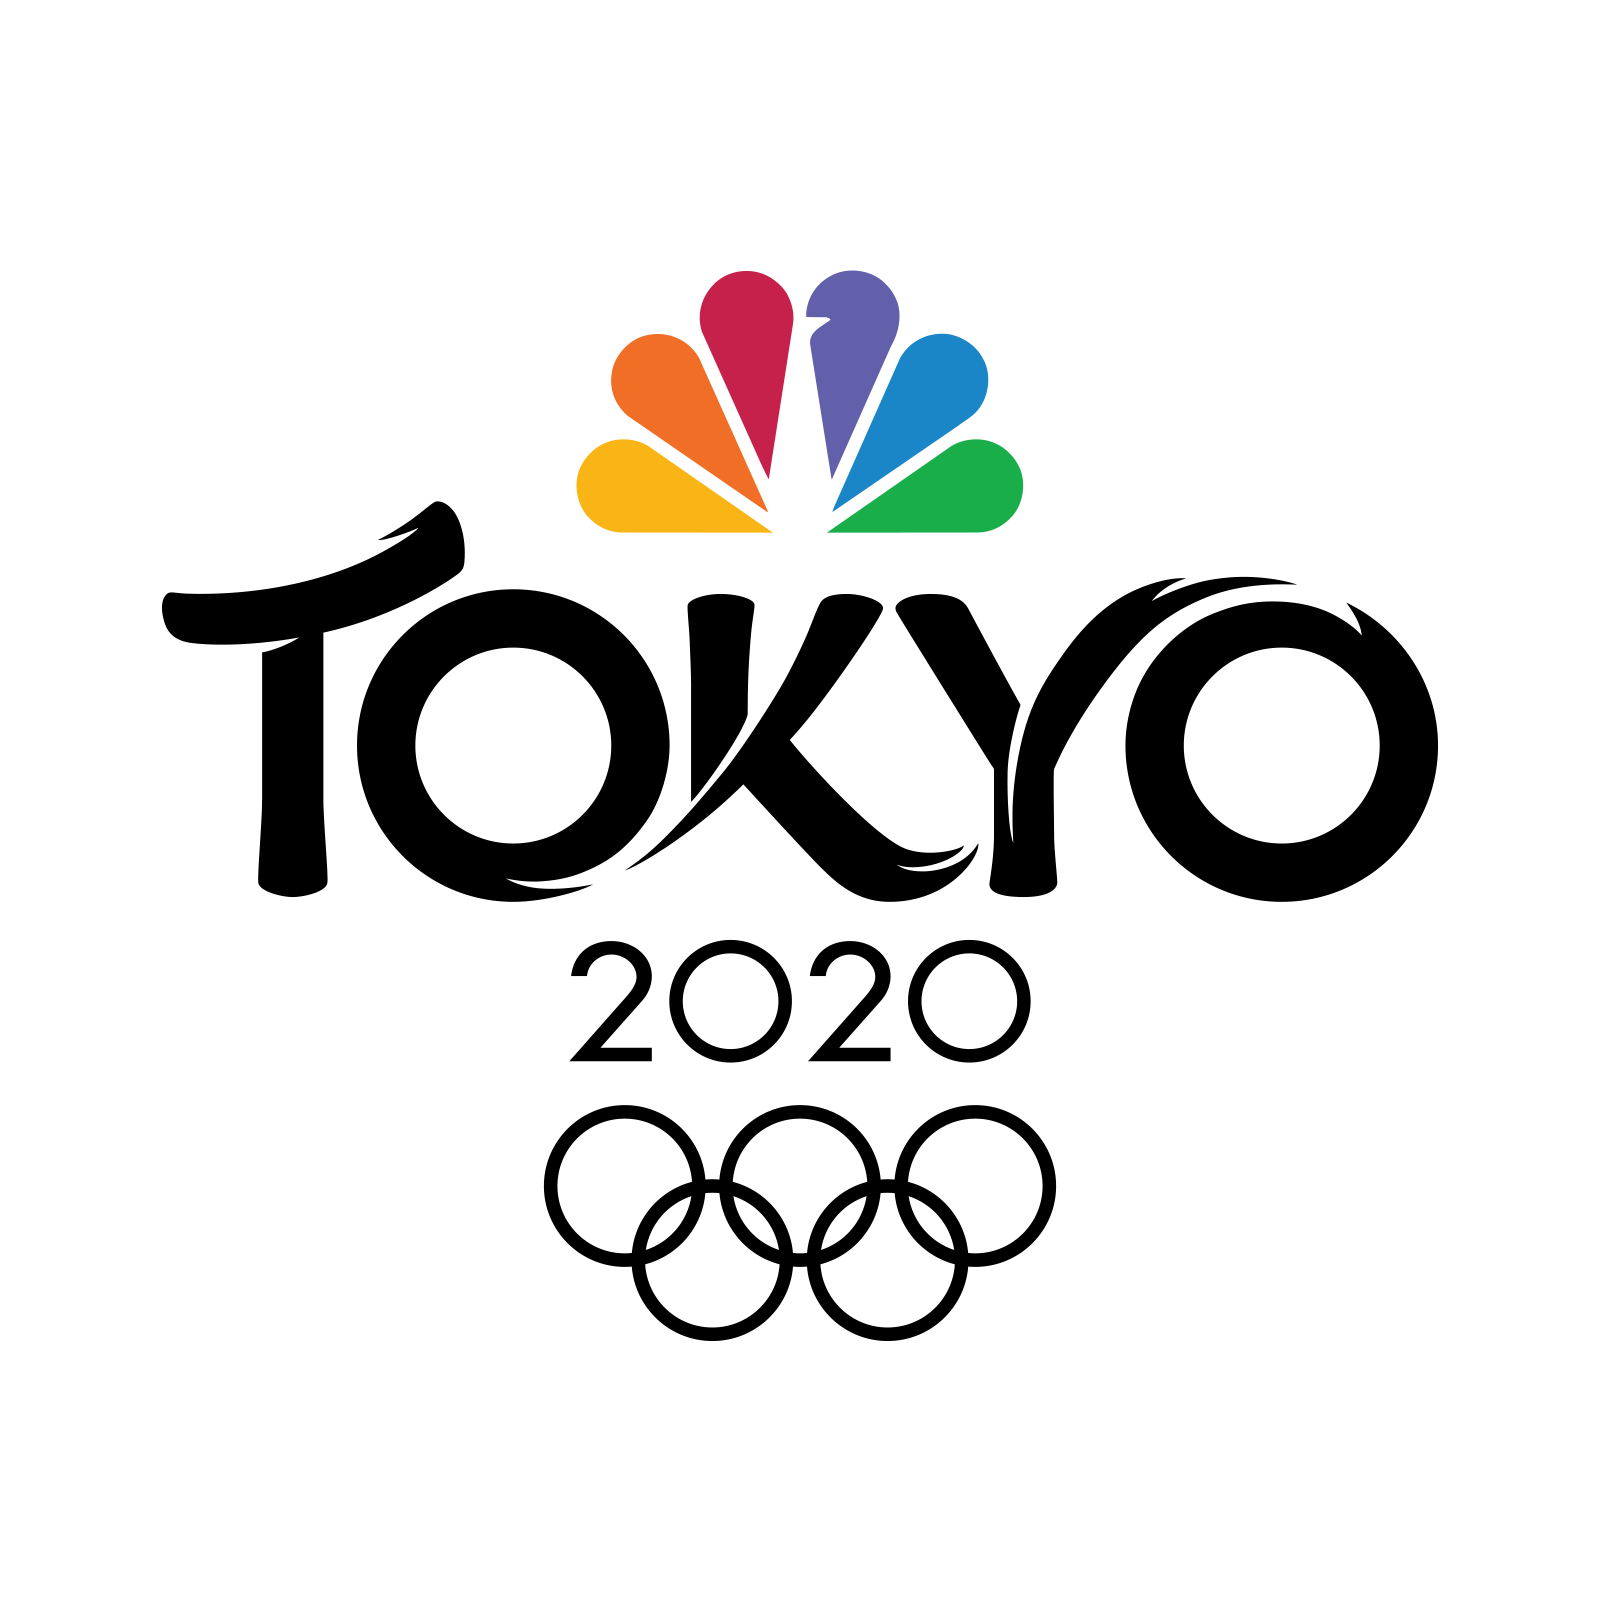 NBCUniversal reveal advertising sales have surpassed $1 billion for Tokyo 2020